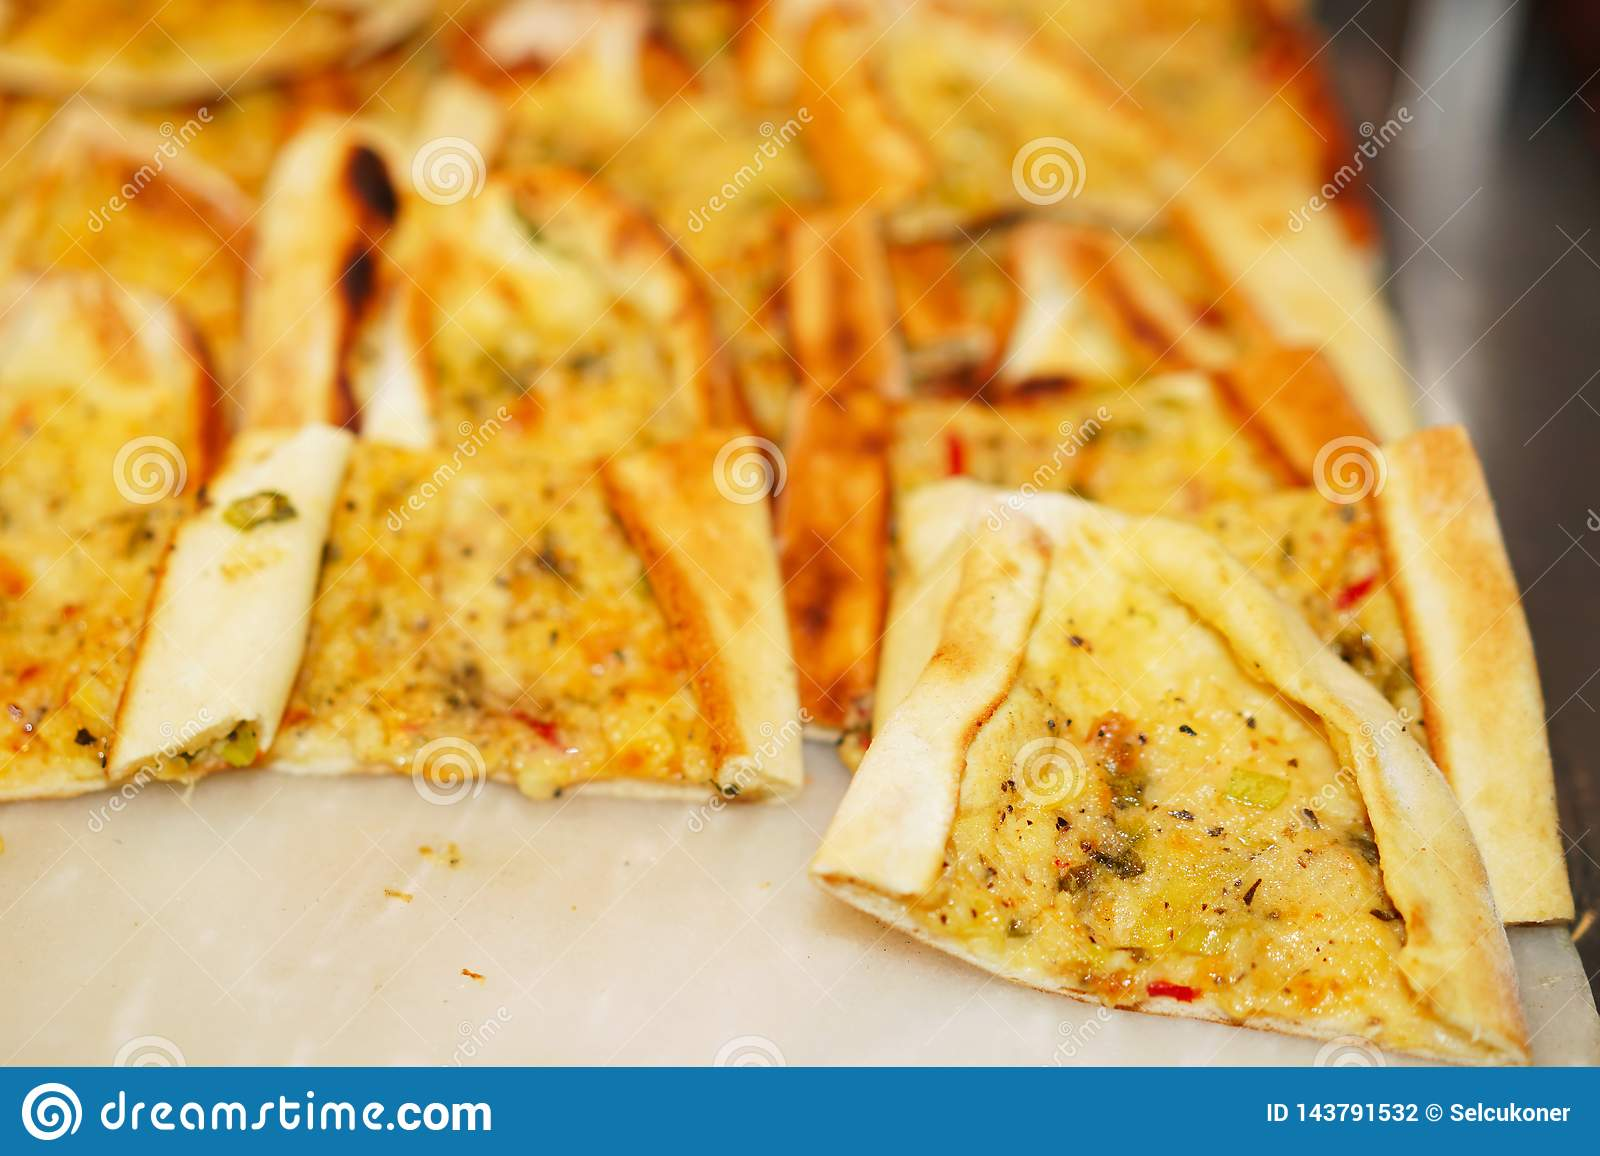 Delicious Turkish pide